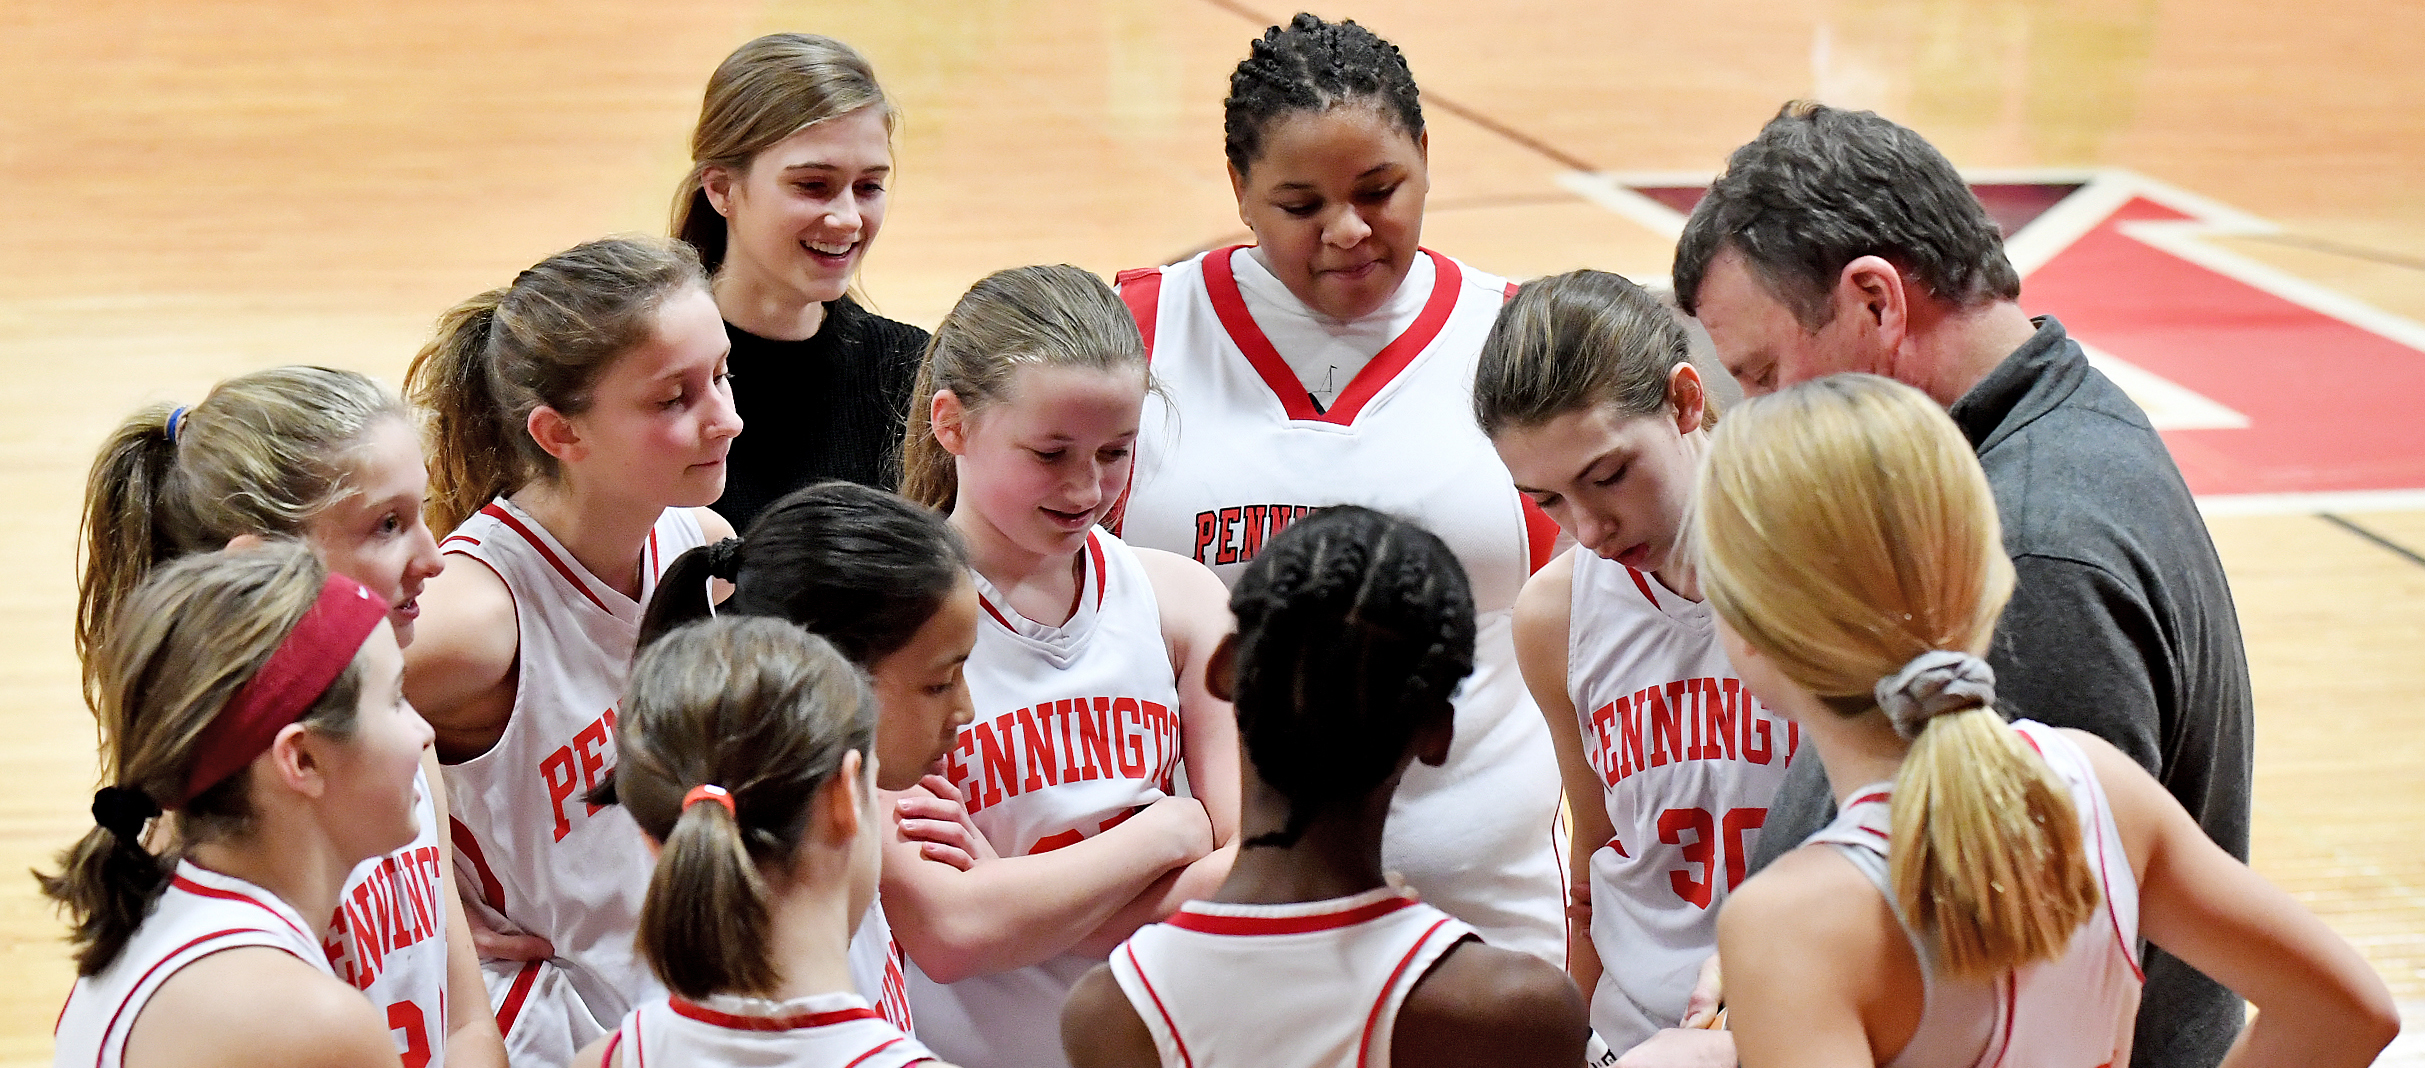 Girls' basketball team meets with the coach before a game